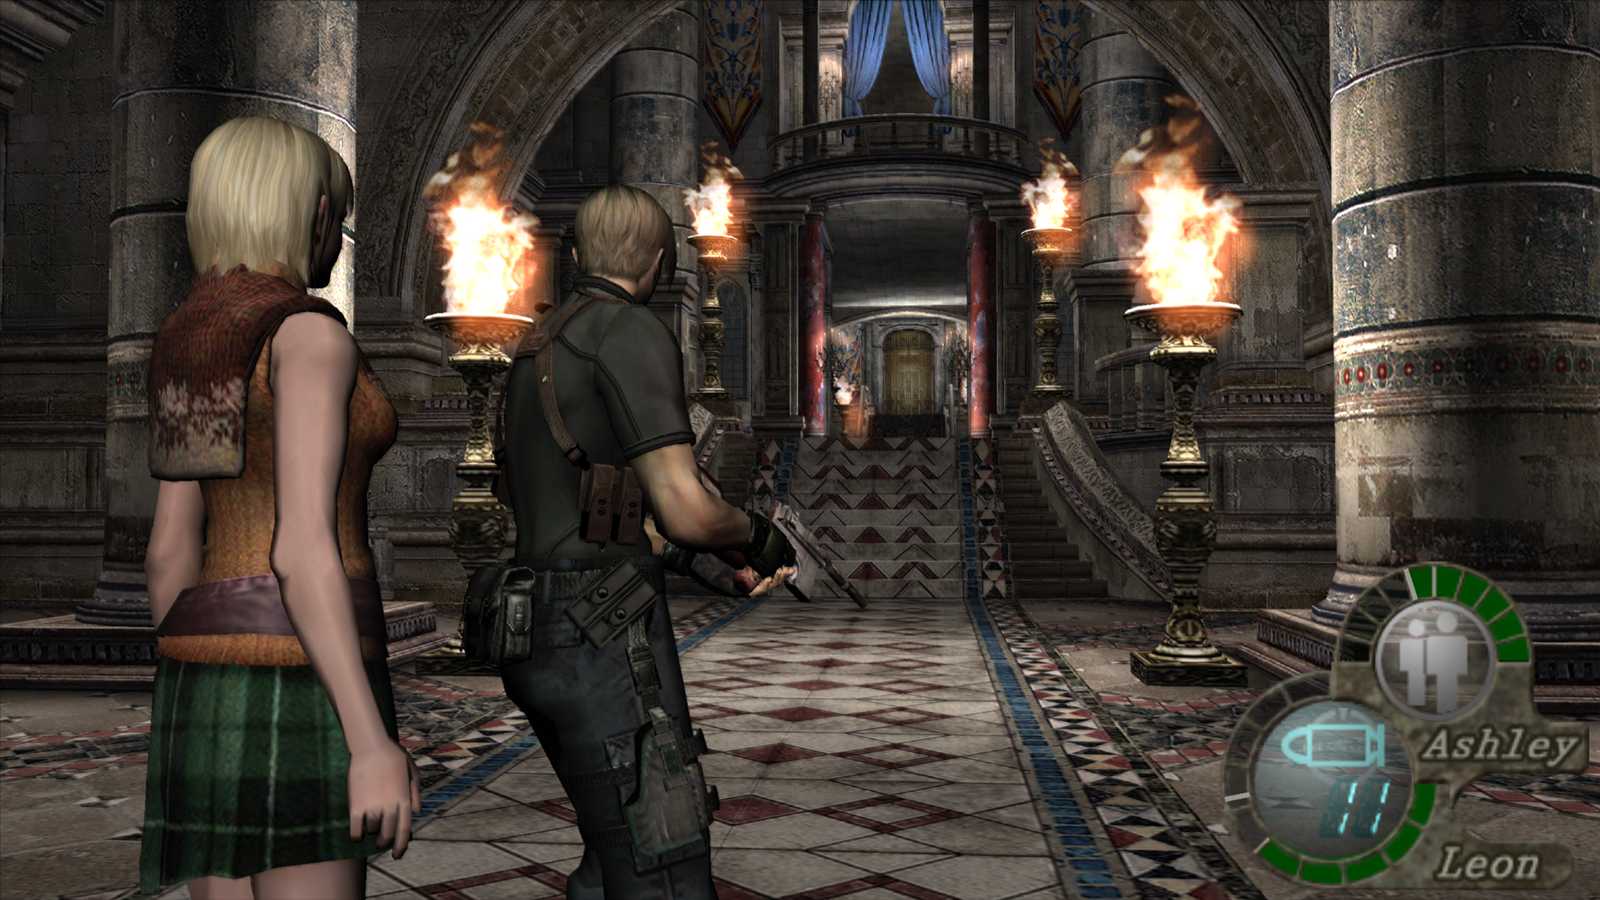 ATBs Best Games Ever 2 Resident Evil 4 Objection Network